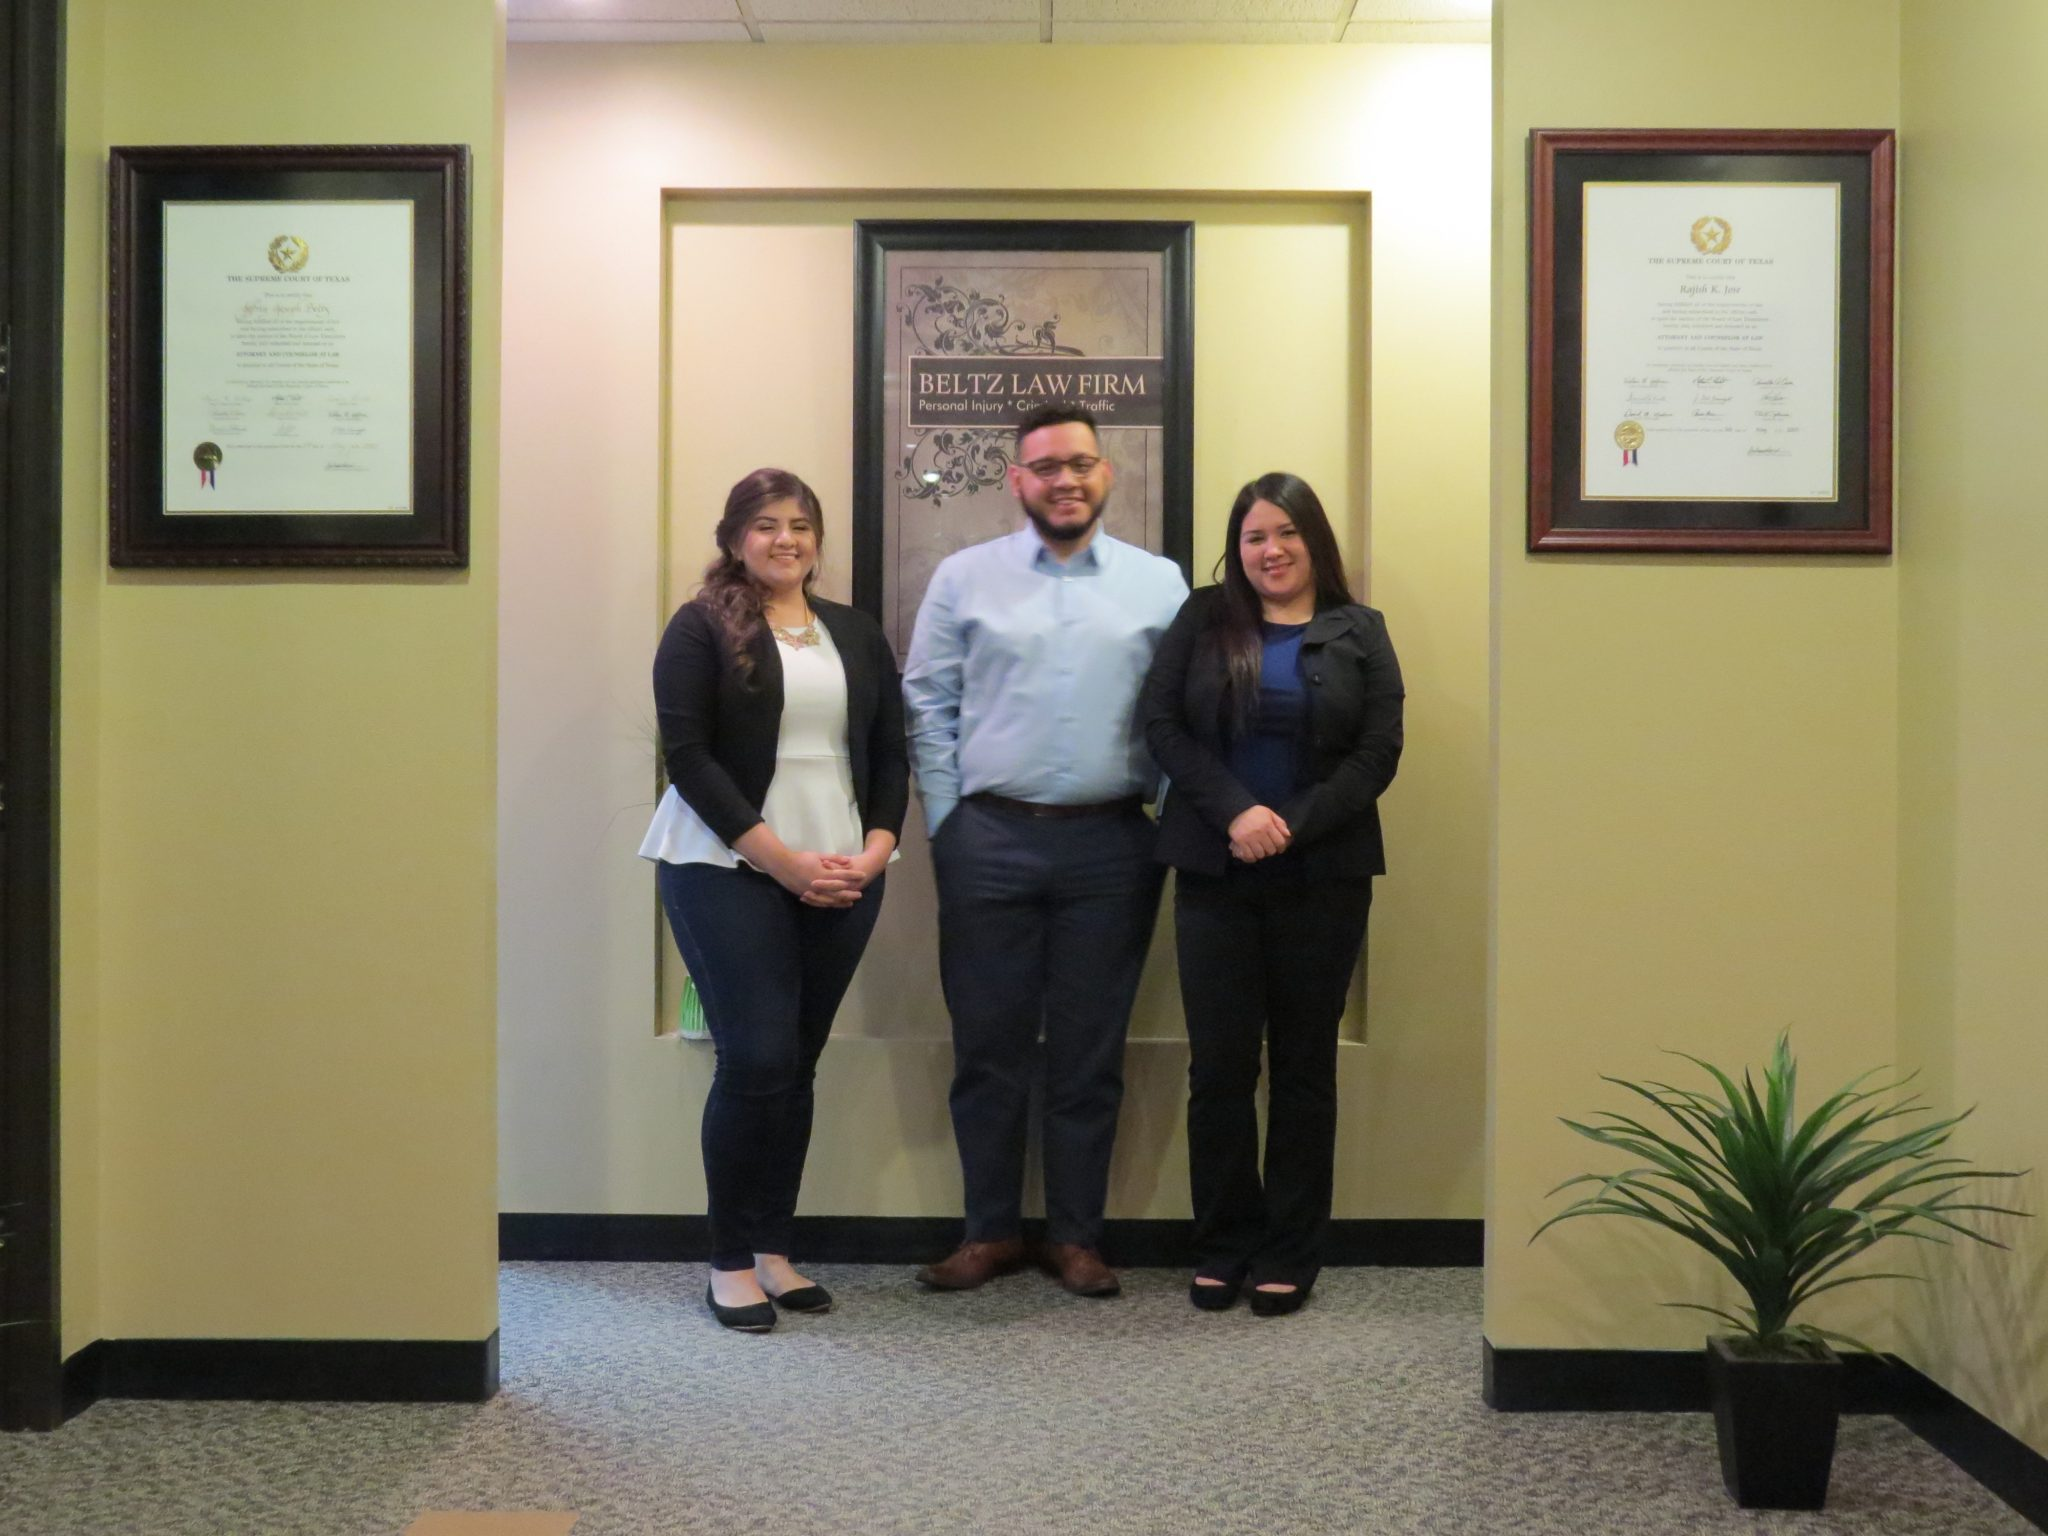 The Beltz Law Firm Hire An Attorney To Help With Ntta